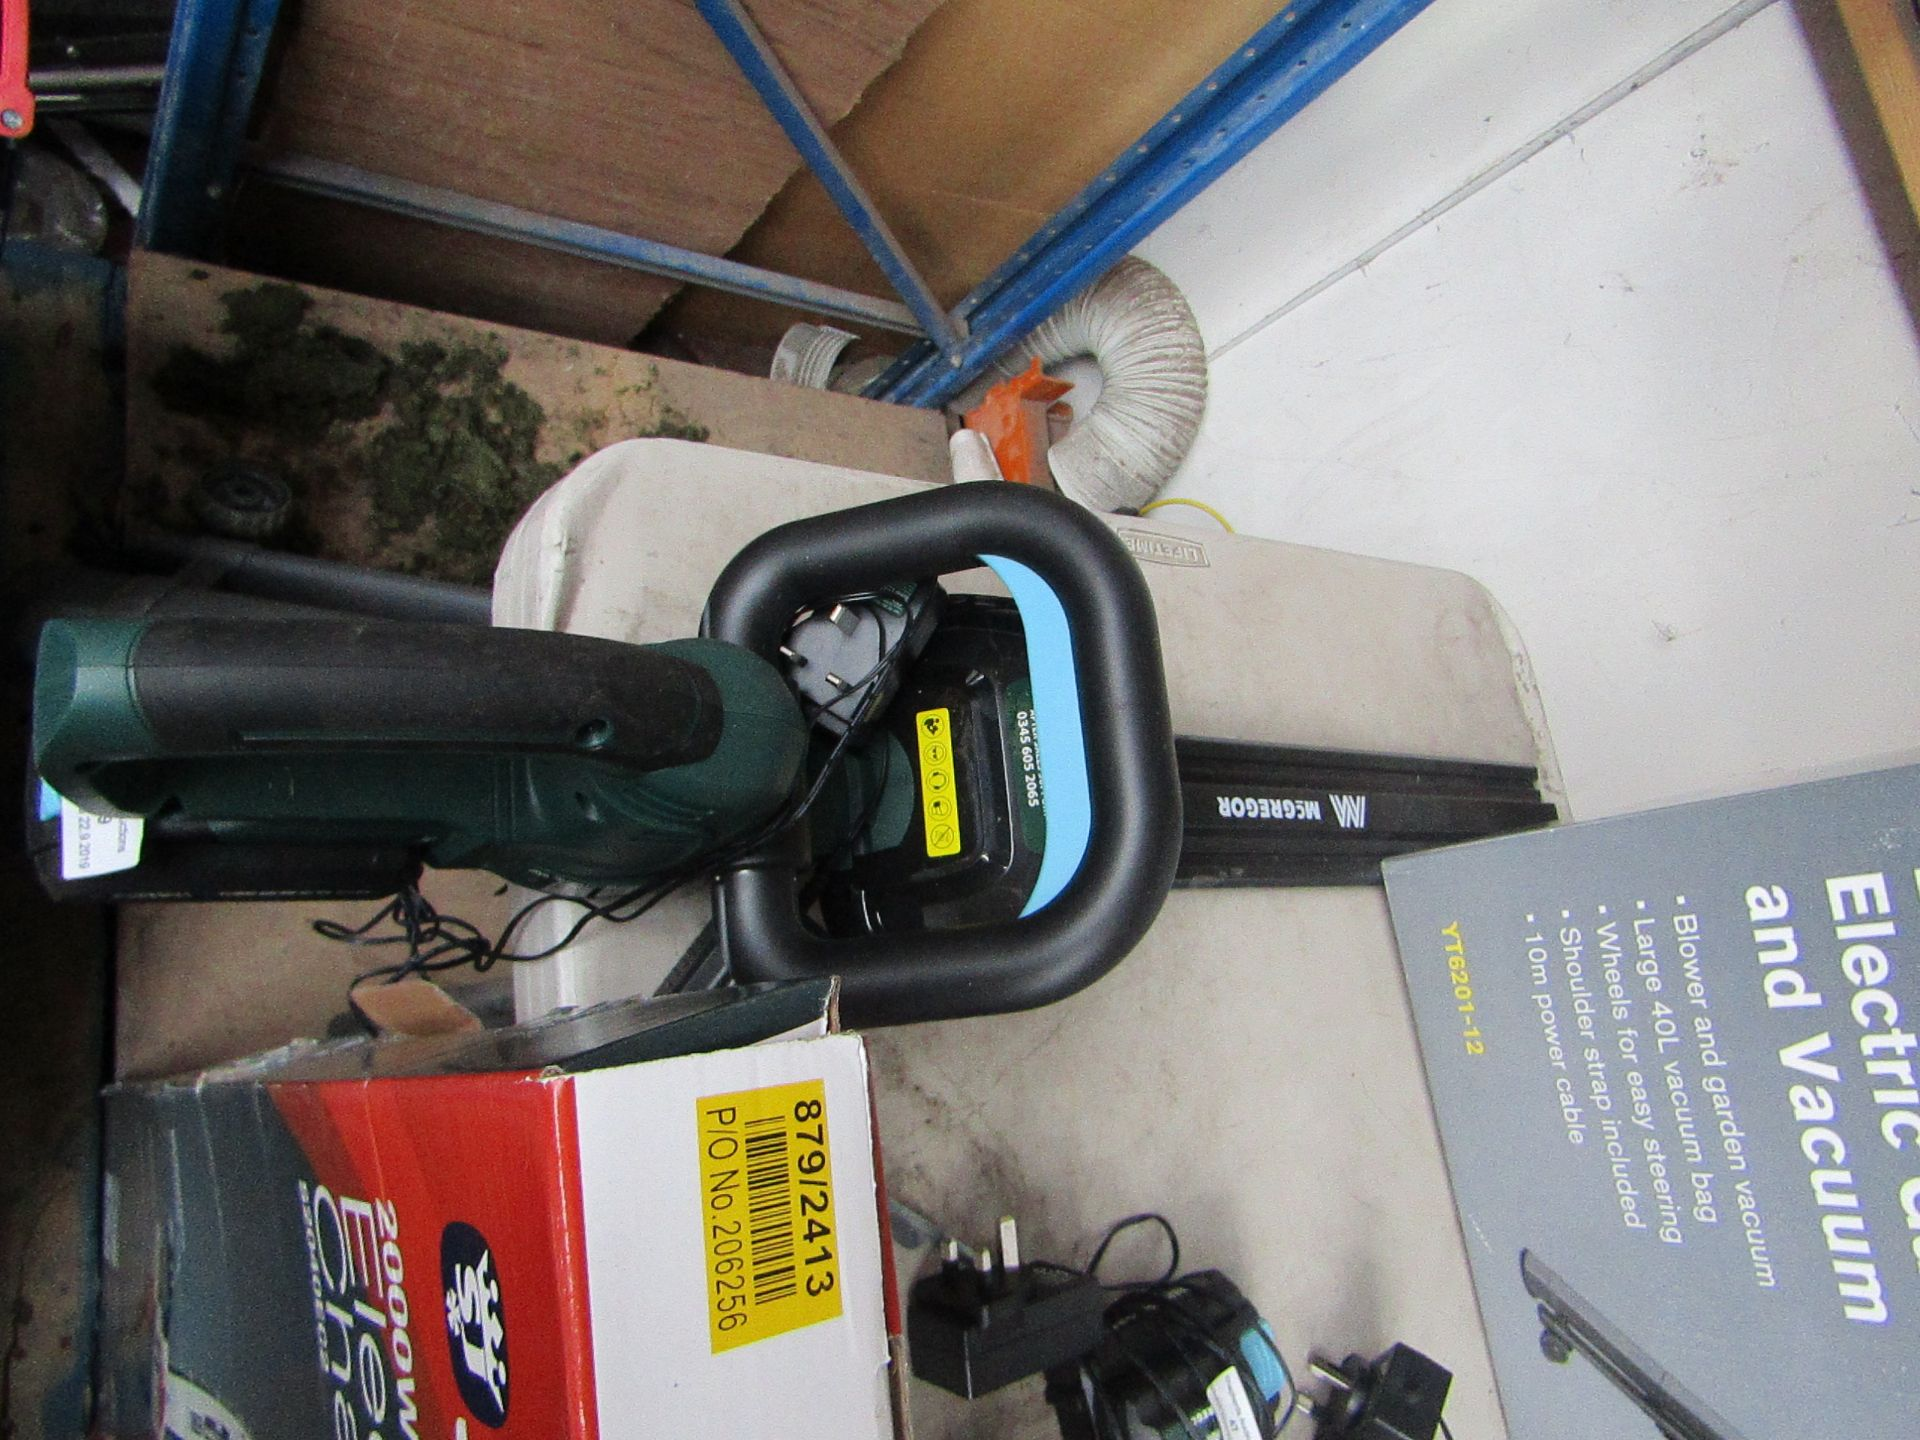 Lotto 59 - McGregor 18V cordless Hedge trimmer with Charger and Battery, tested working with the power it